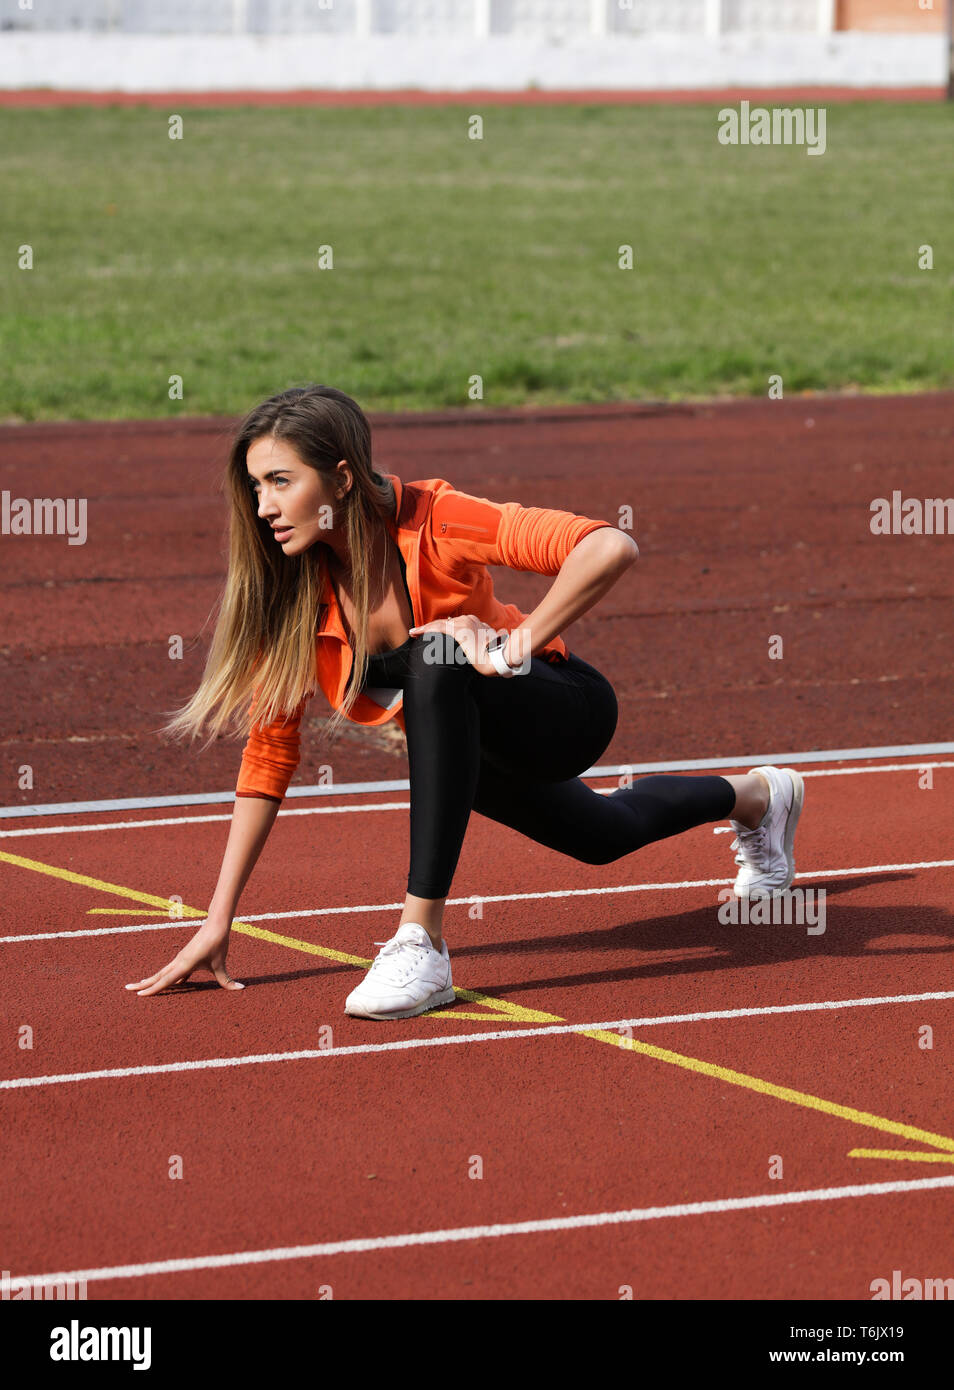 Active athlete preparing to the marathon on the track.Doing stretching and warm up to get to the finish first.Wearing fashionable, comfortable clothes Stock Photo